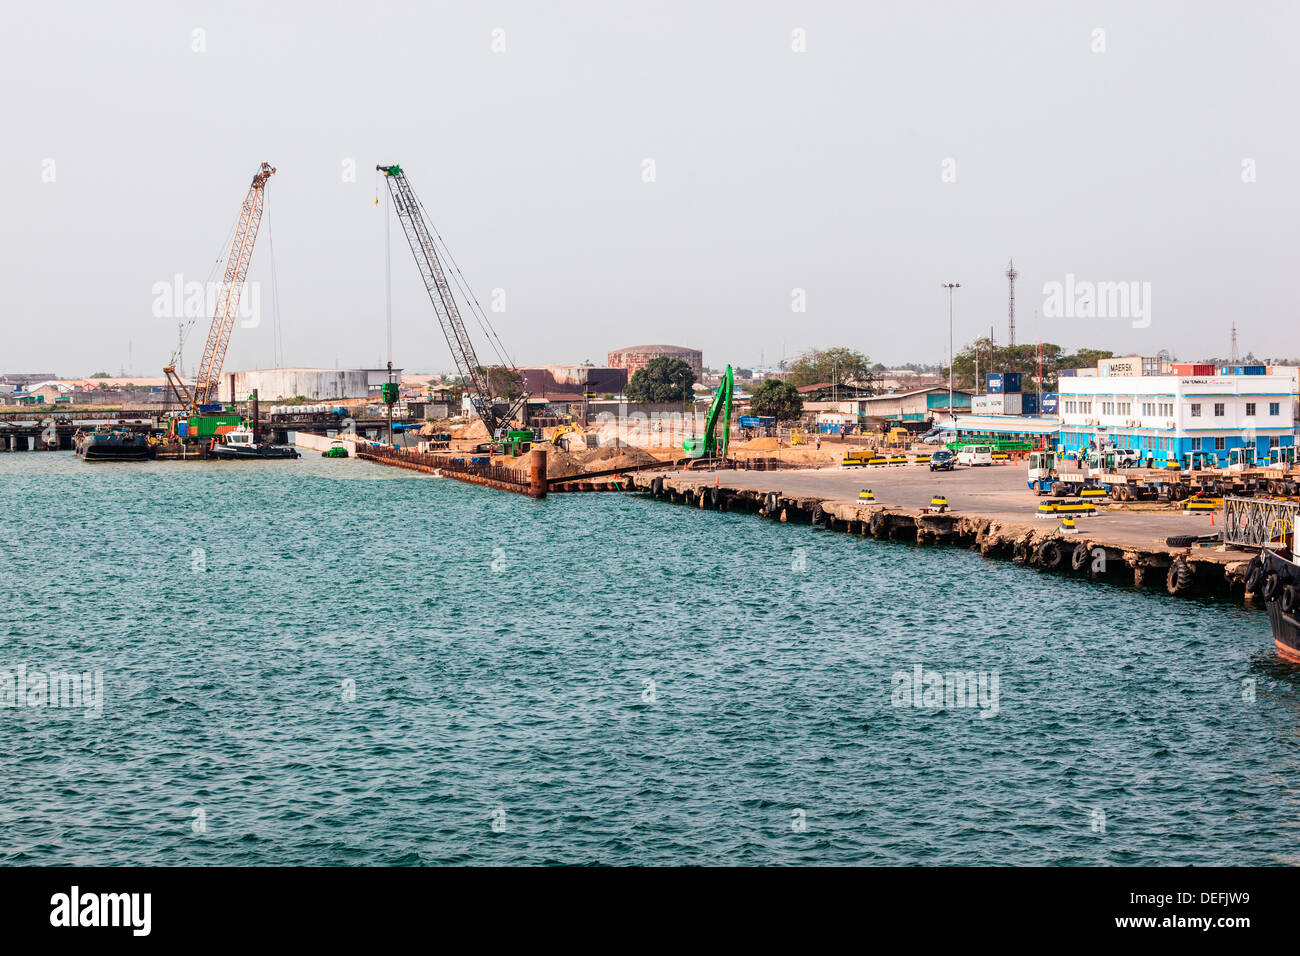 Africa, Liberia, Monrovia. Pilings being constructed at port. - Stock Image